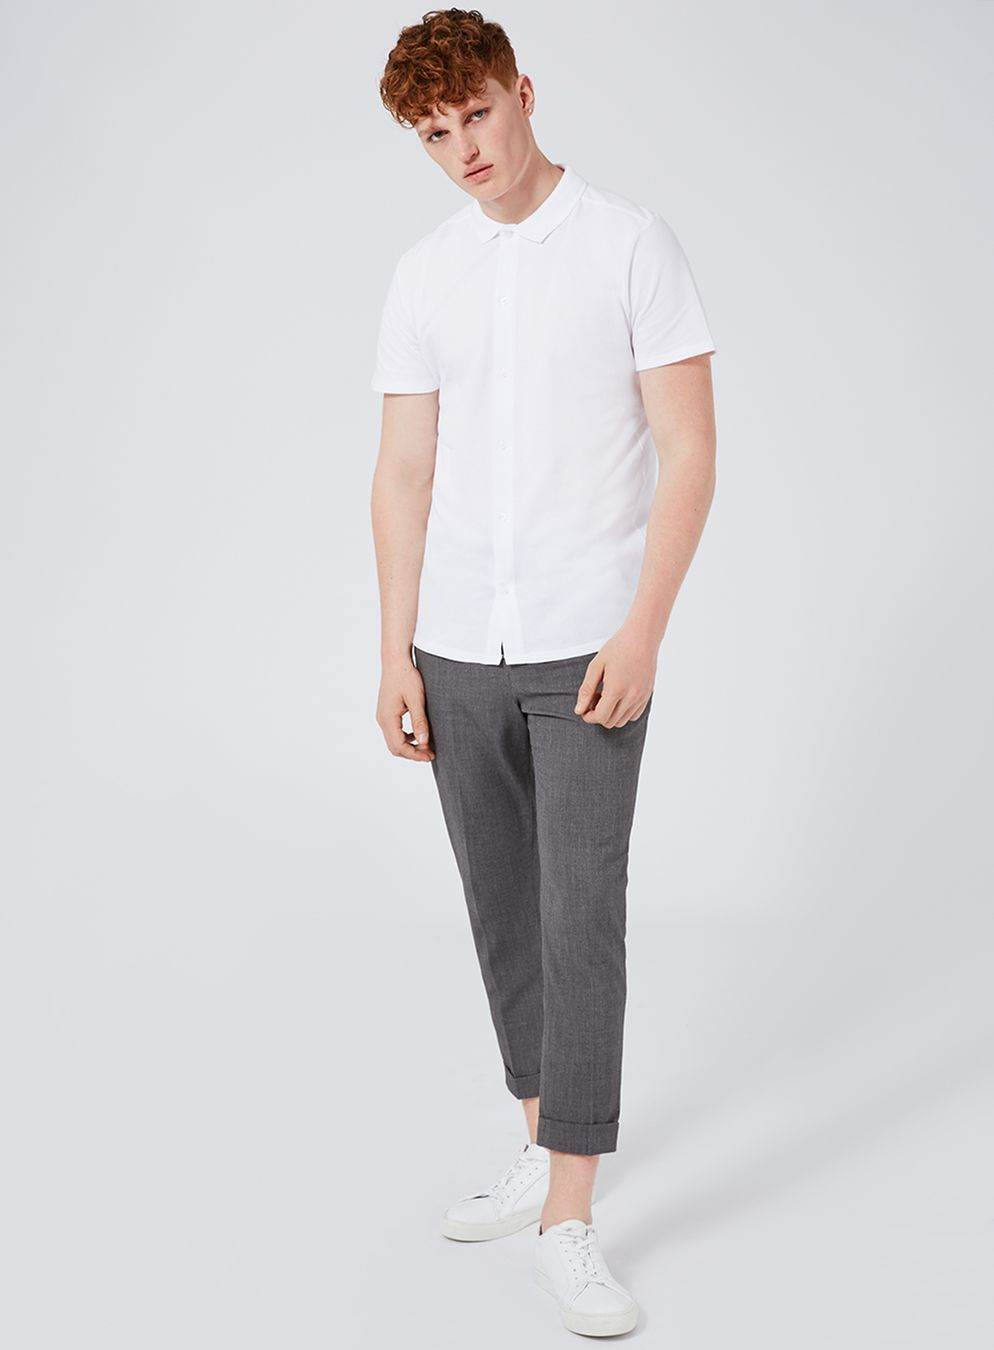 Polo shirt and chinos by Topman - how to wear embroidered polo shirts